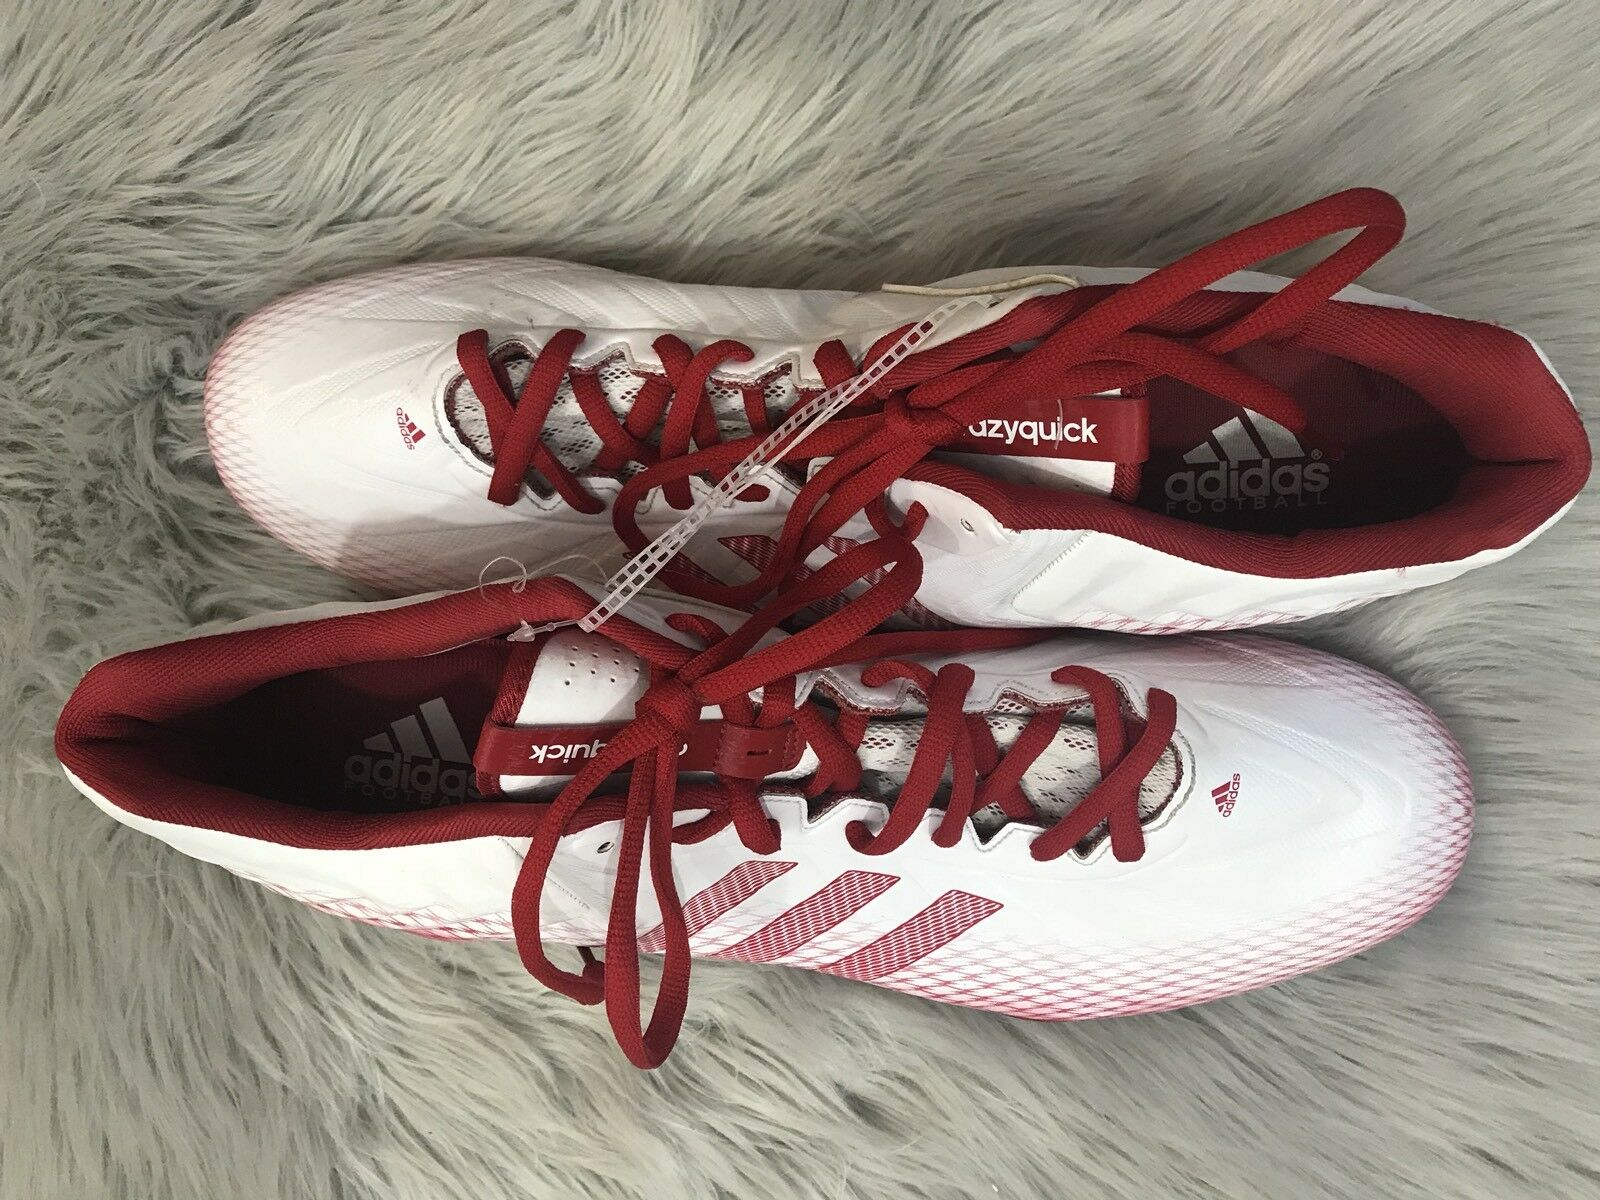 New Men's Red/White 'Crazyquick' adidas Low Top FootBall Cleats Price reduction Casual wild